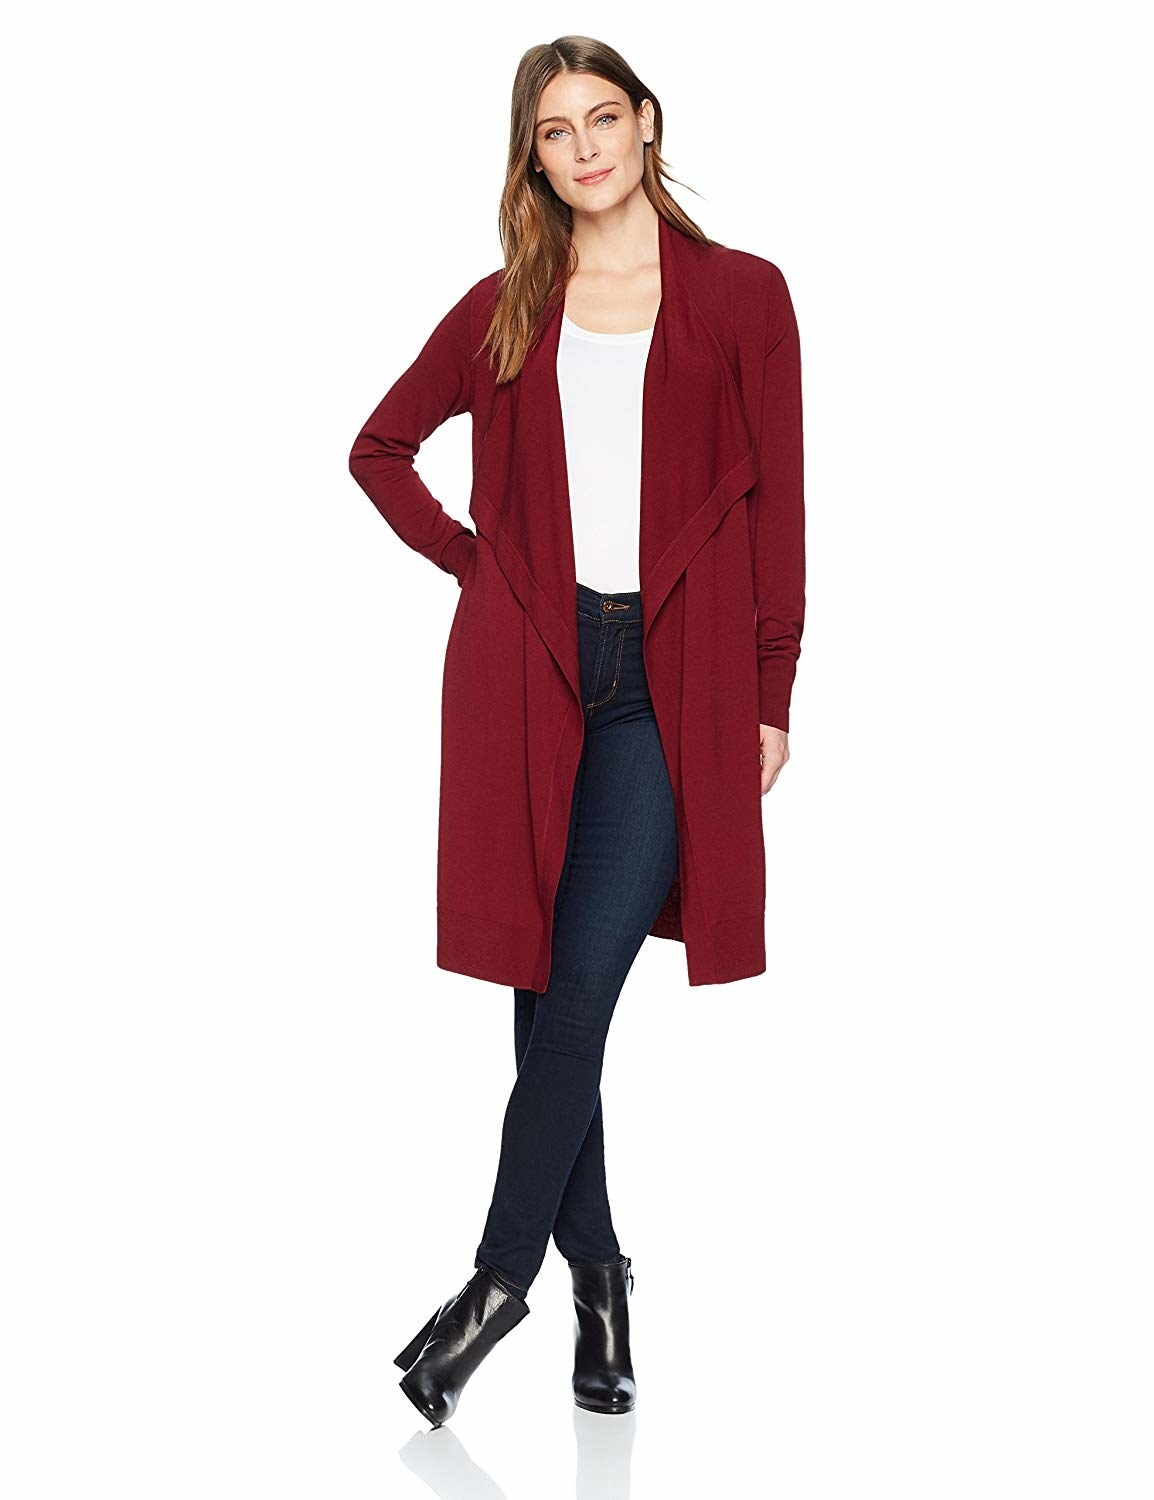 c628e2d67c16 22 Things From Amazon's Fashion Brands That'll Give You Yet Another ...